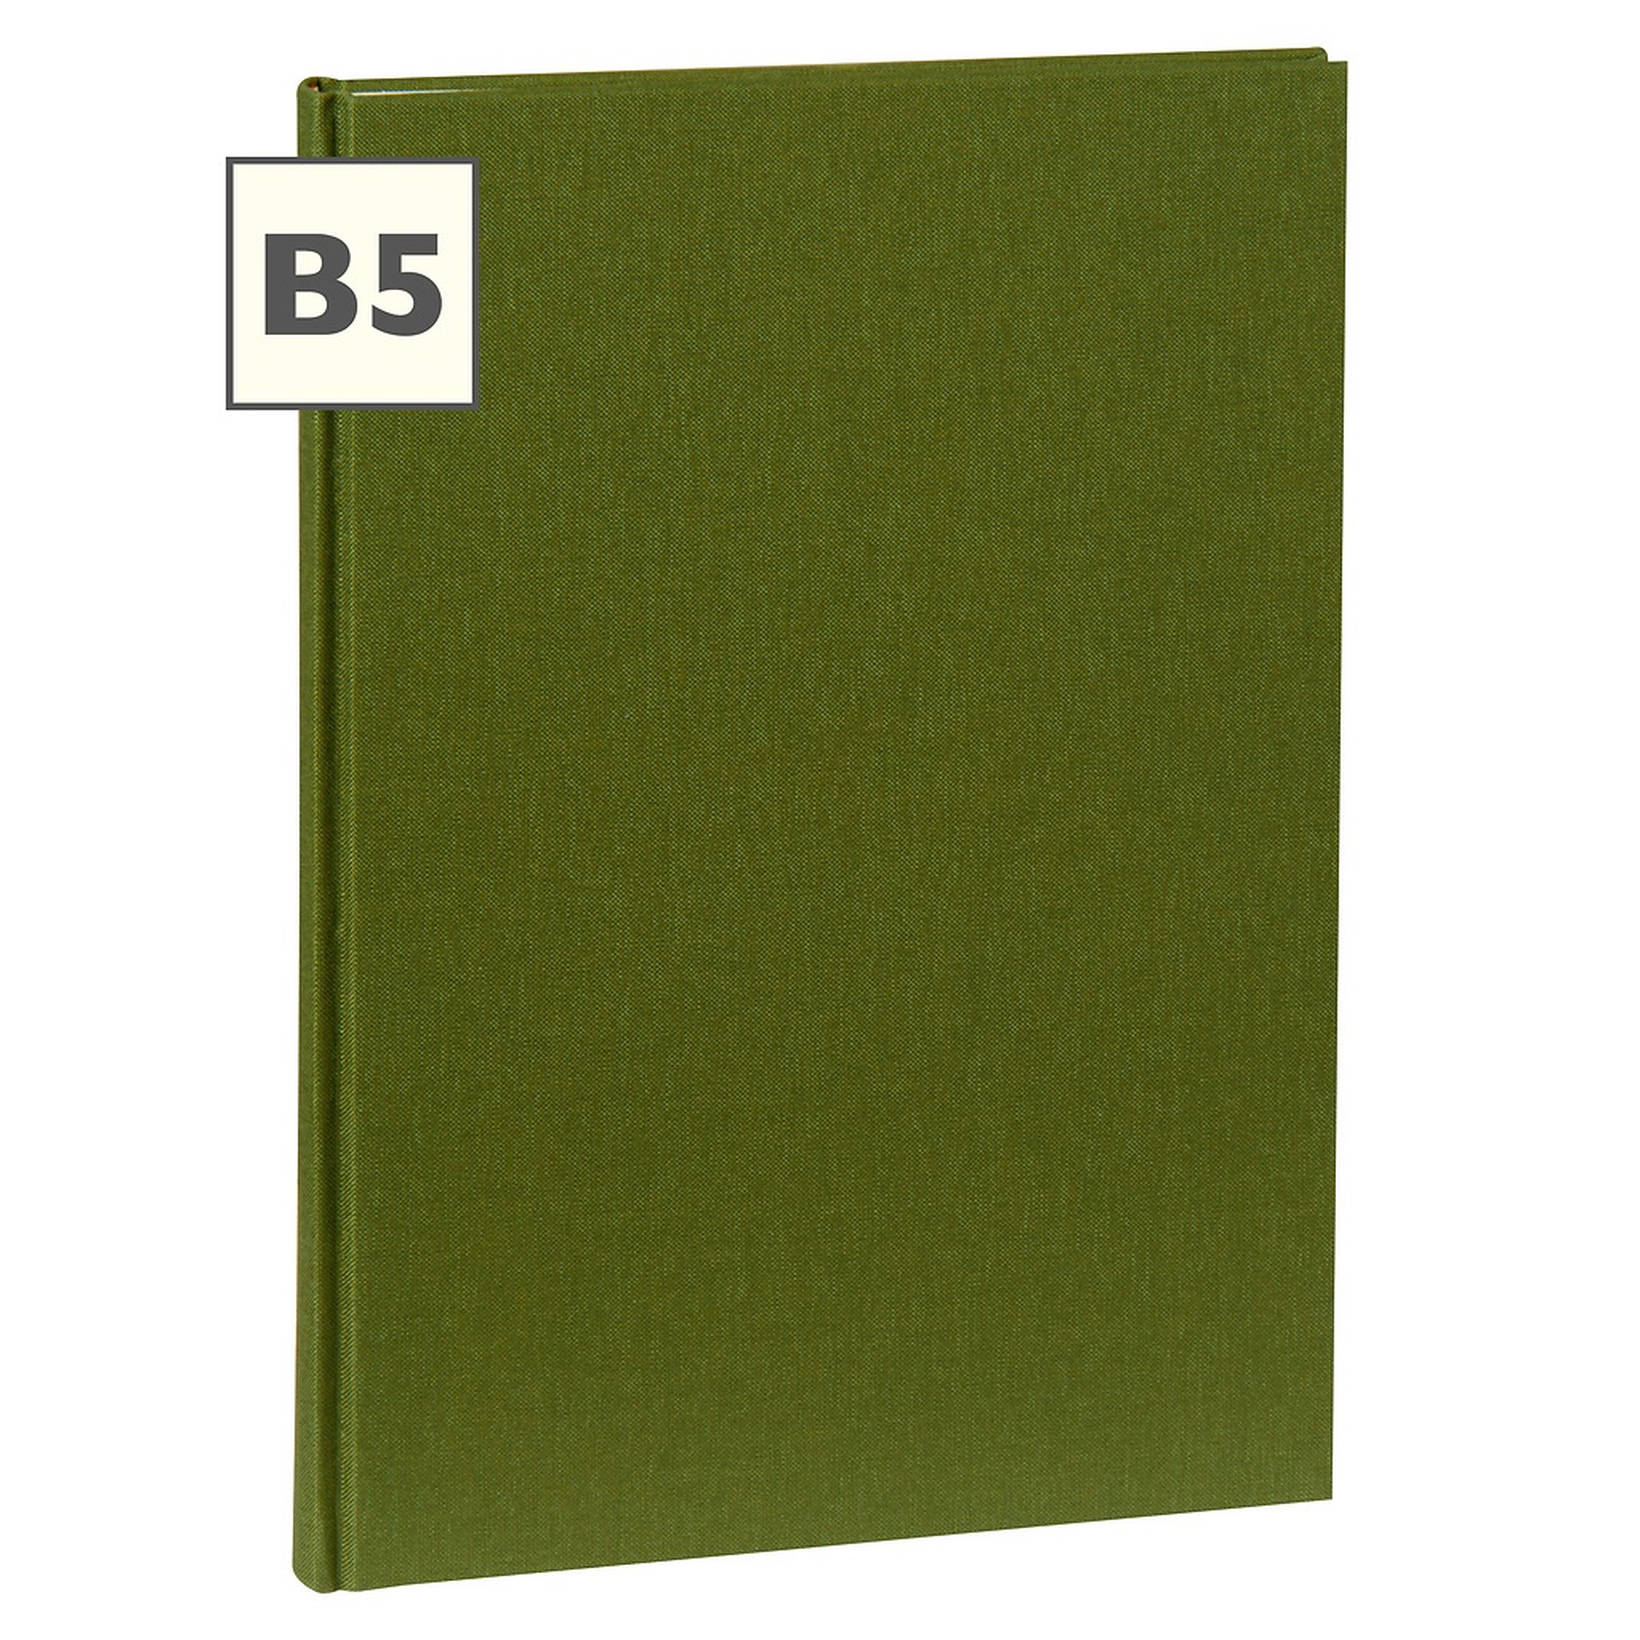 Notebook Classic B5 With Linen Binding, Plain, Irish